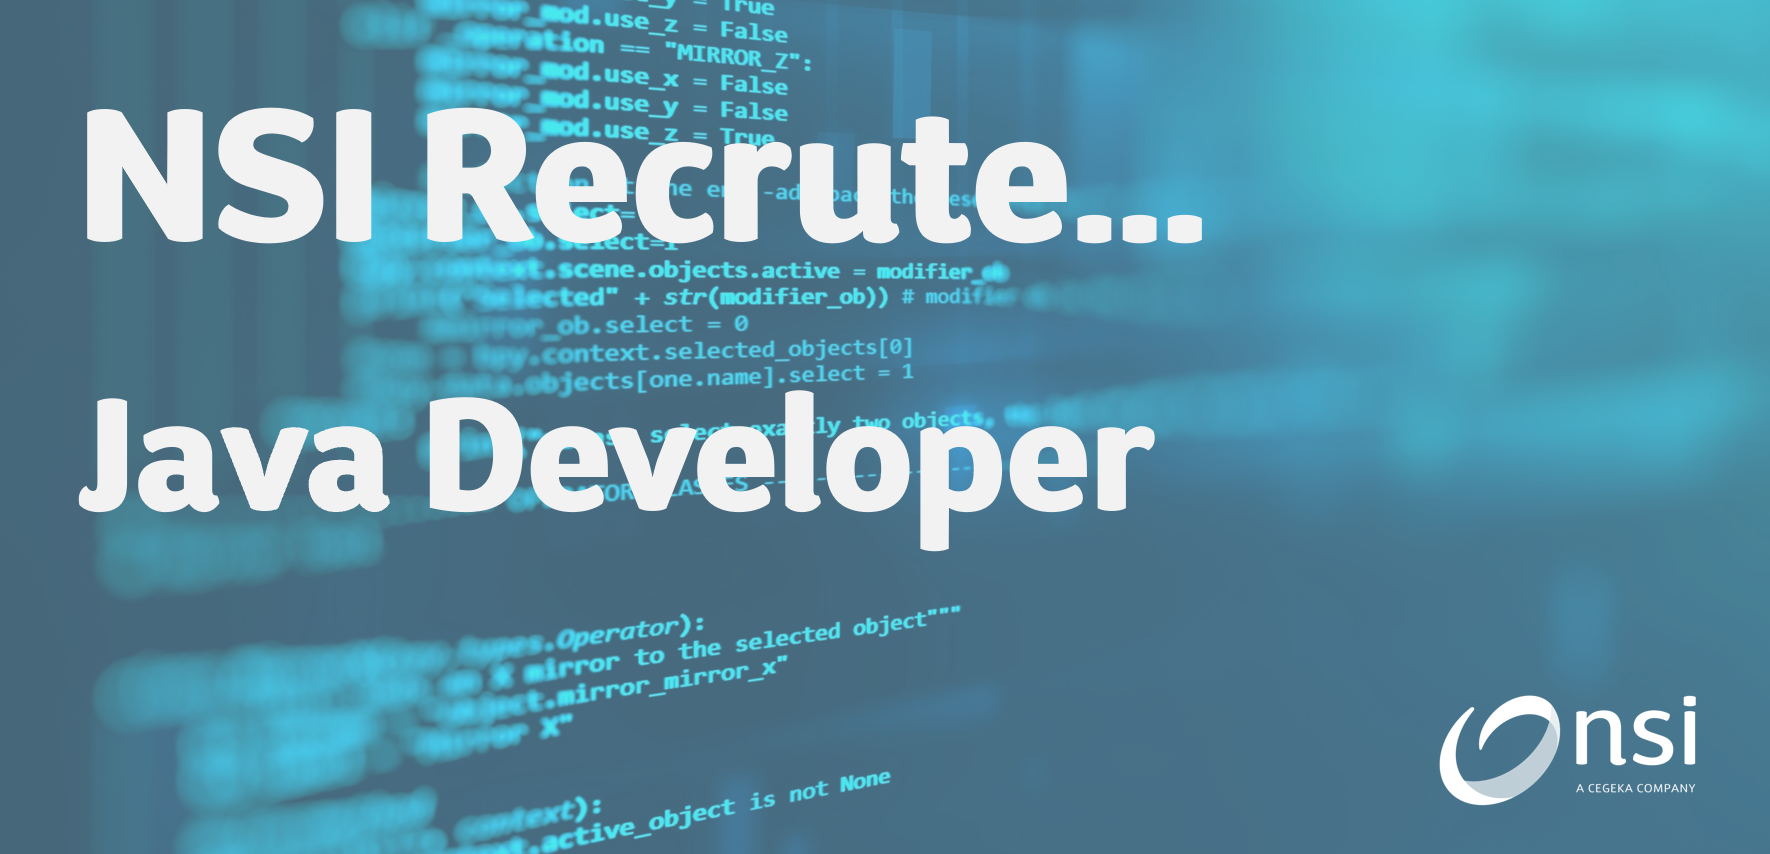 NSI recrute : Java Developer